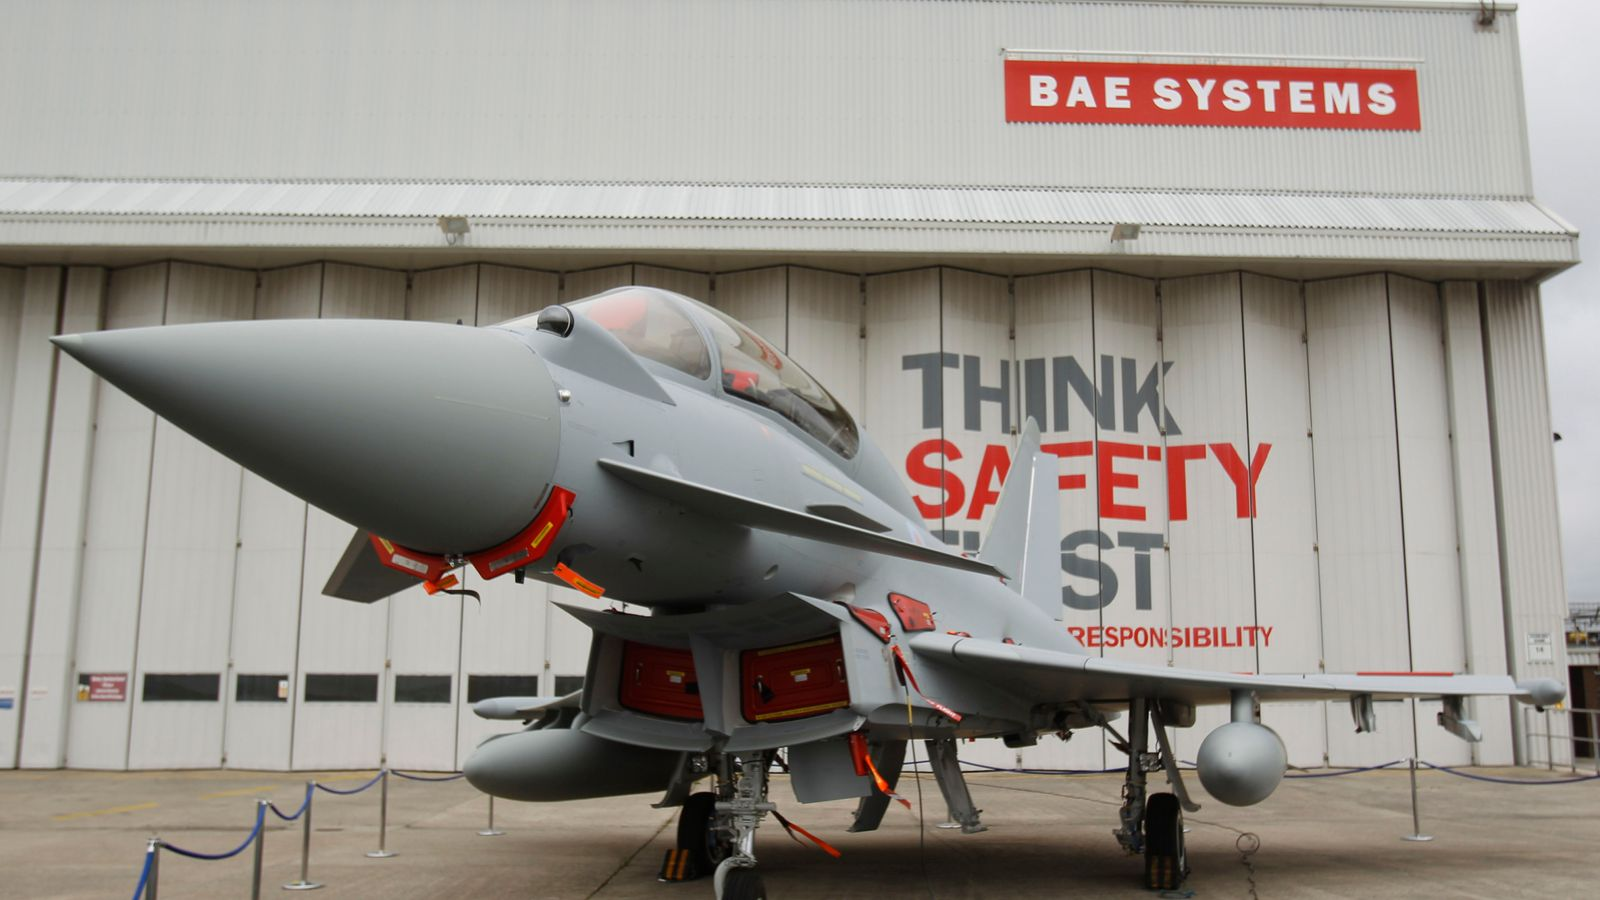 BAE Systems hands Woodburn £2m pay rise after poaching bid